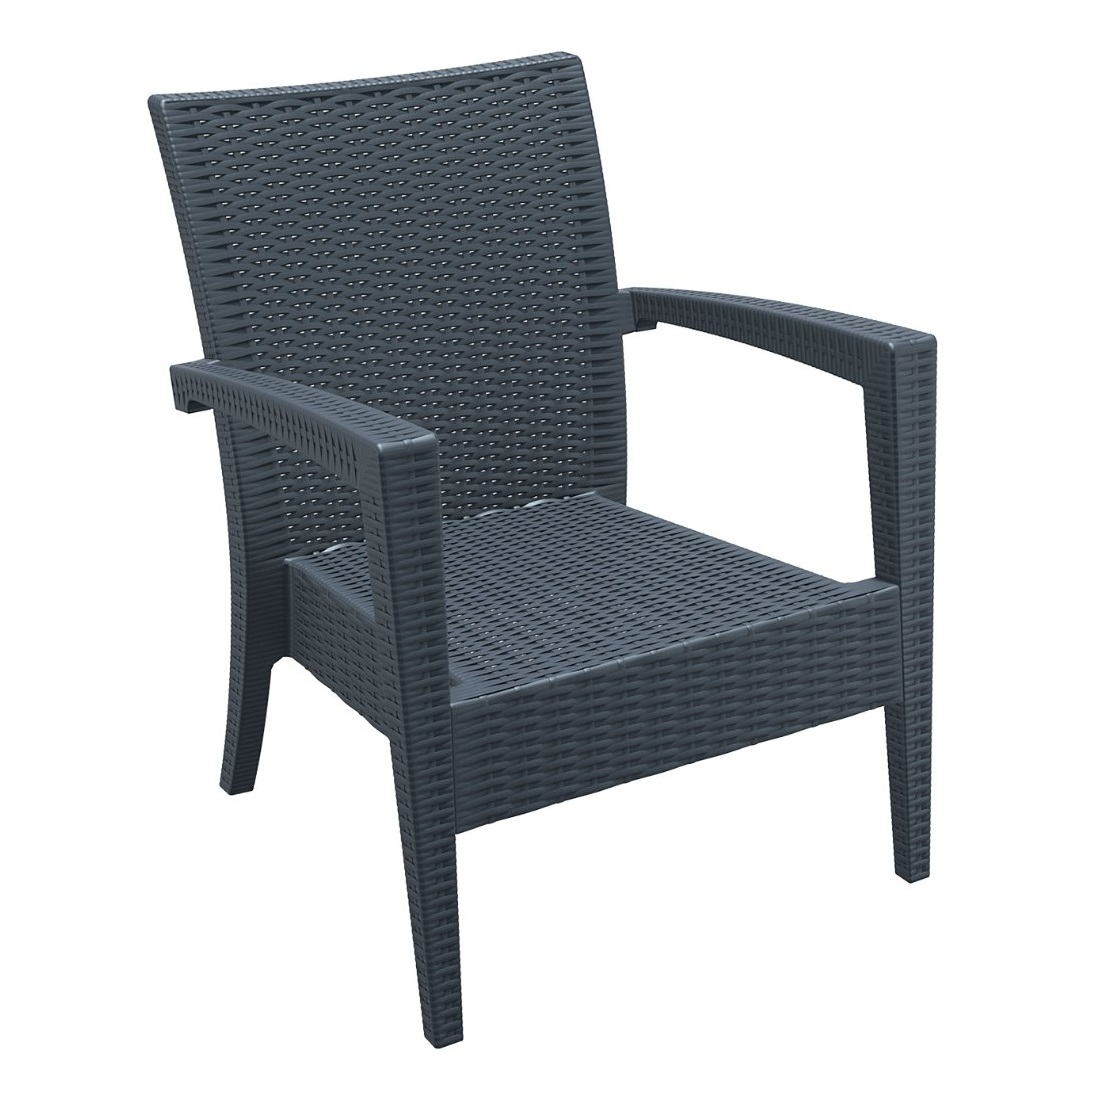 Tequila Lounge Armchair